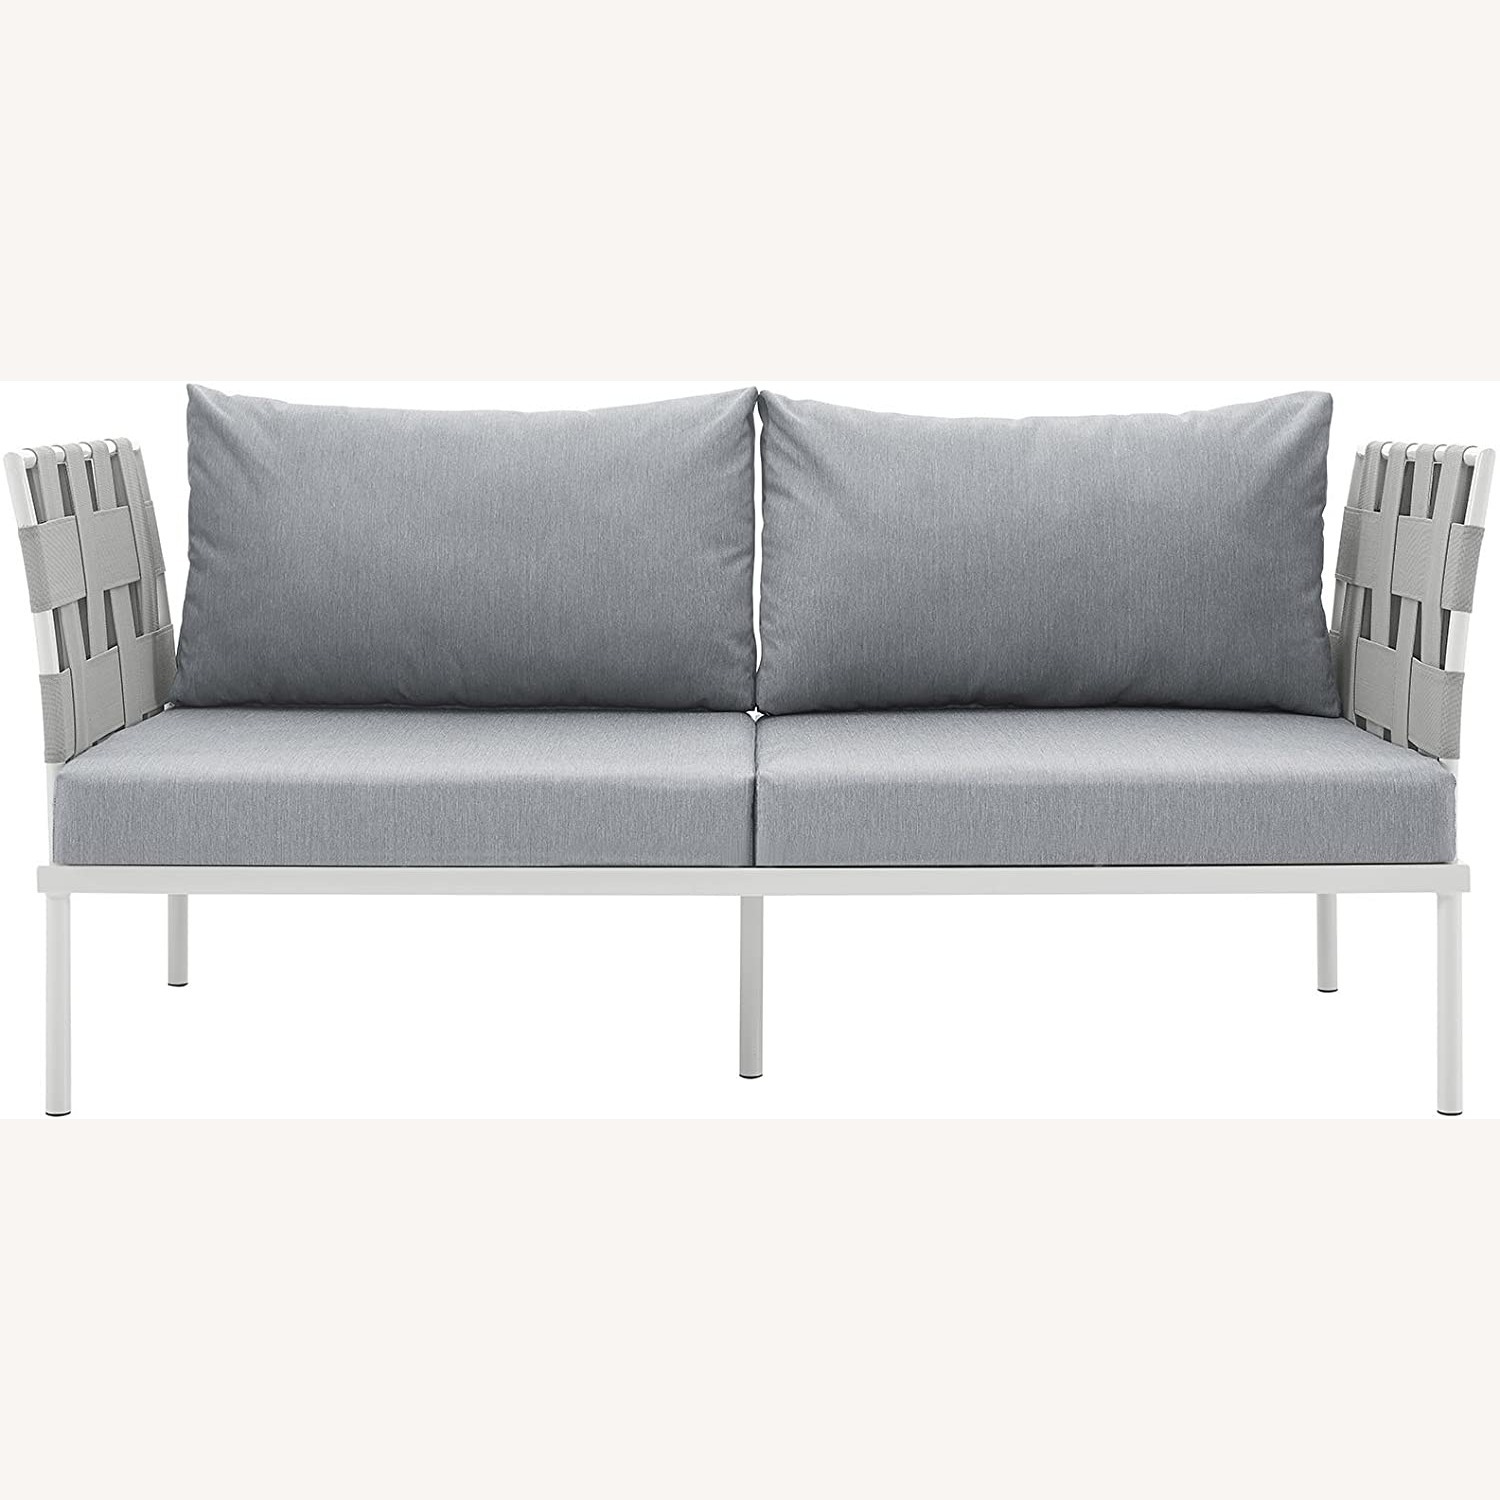 Outdoor Loveseat In Gray Silk Polyester Weave - image-1